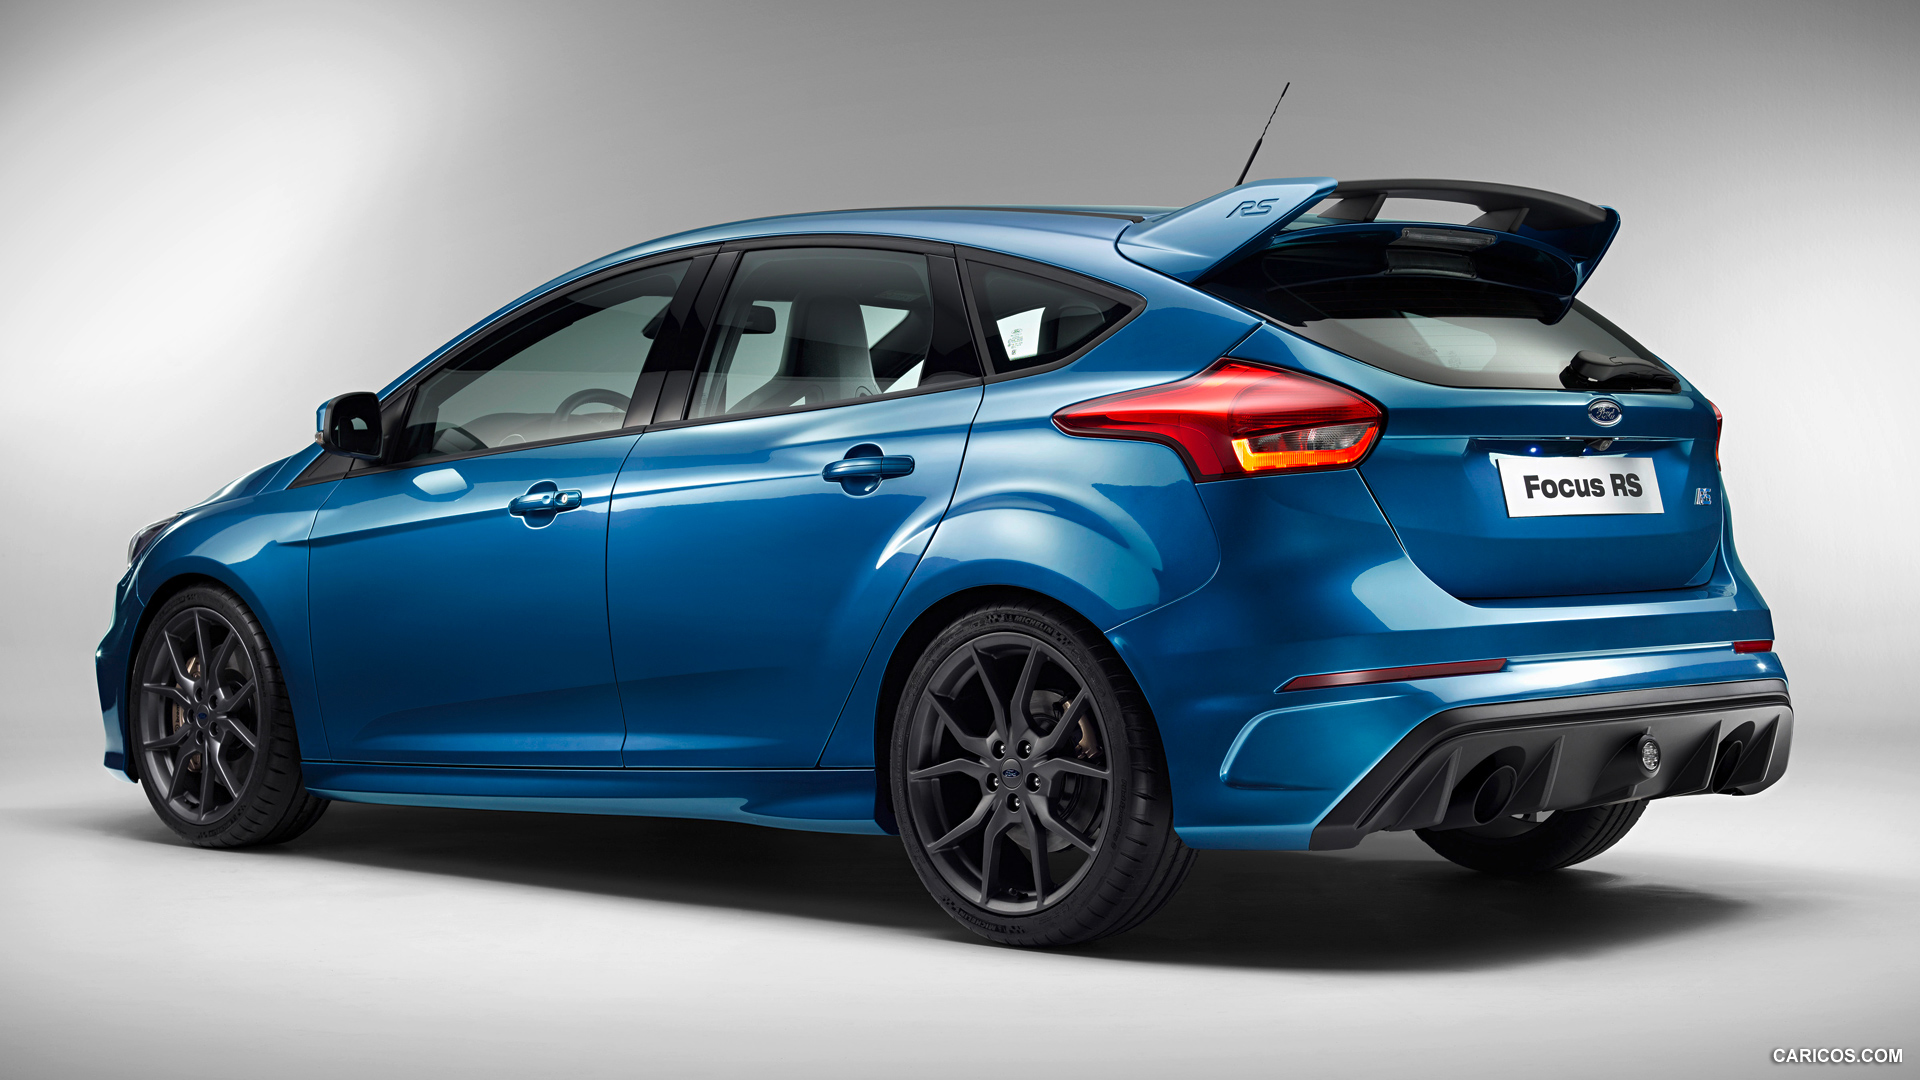 ford focus rs 2016 hd wallpapers free download. Black Bedroom Furniture Sets. Home Design Ideas